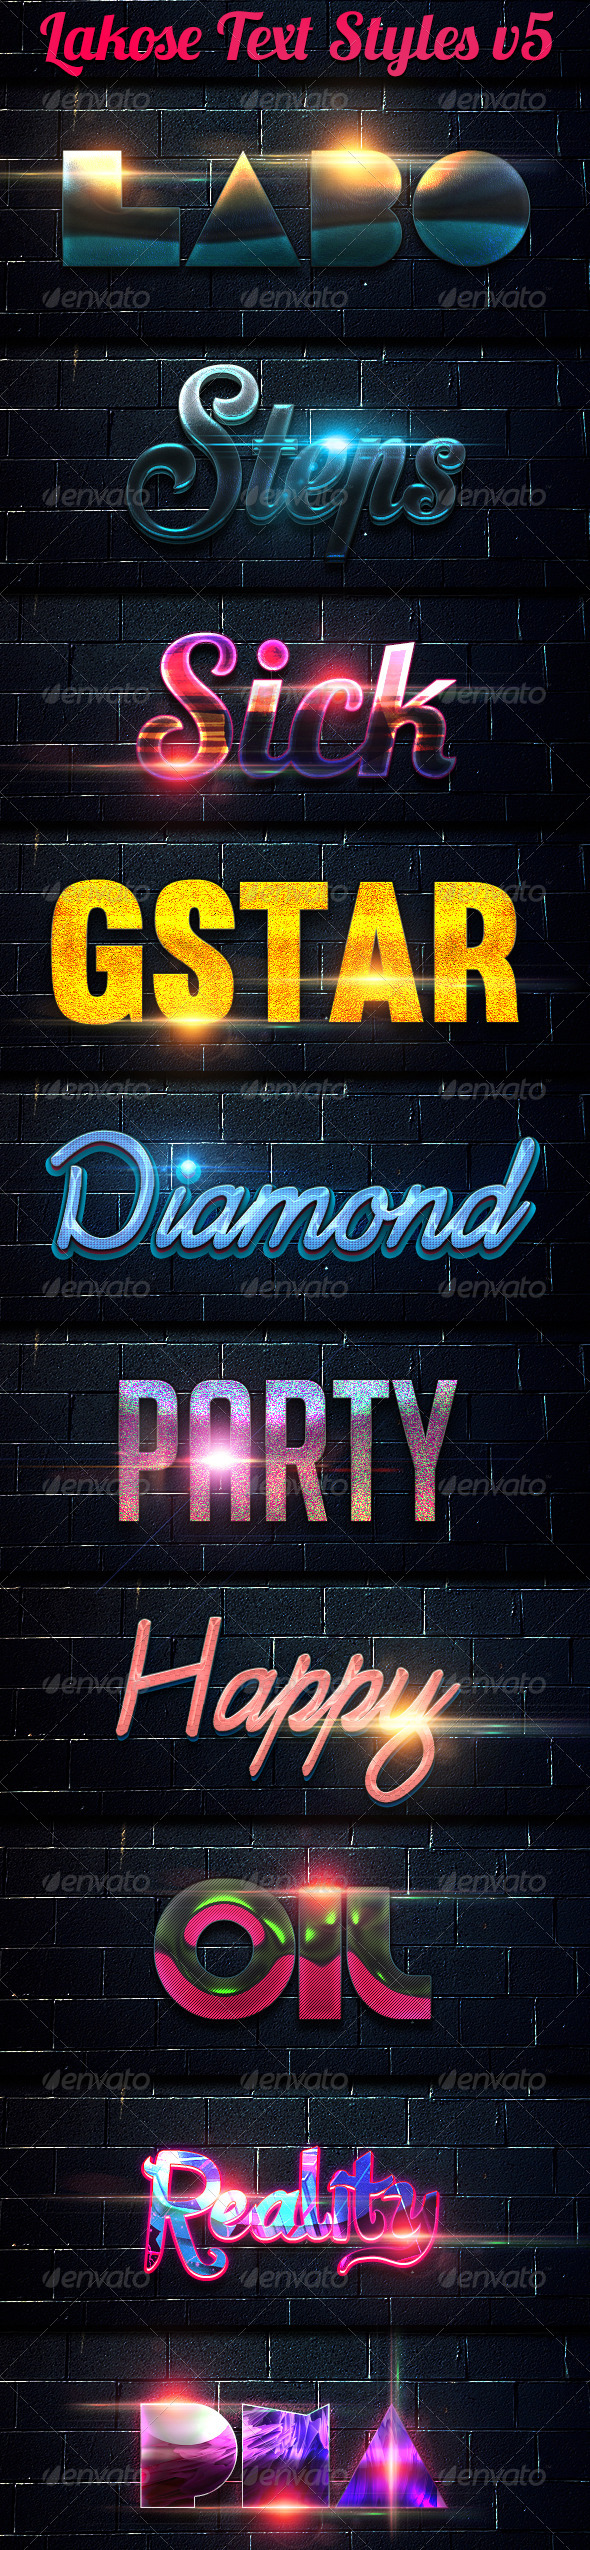 GraphicRiver Lakose Text Styles v5 7764491